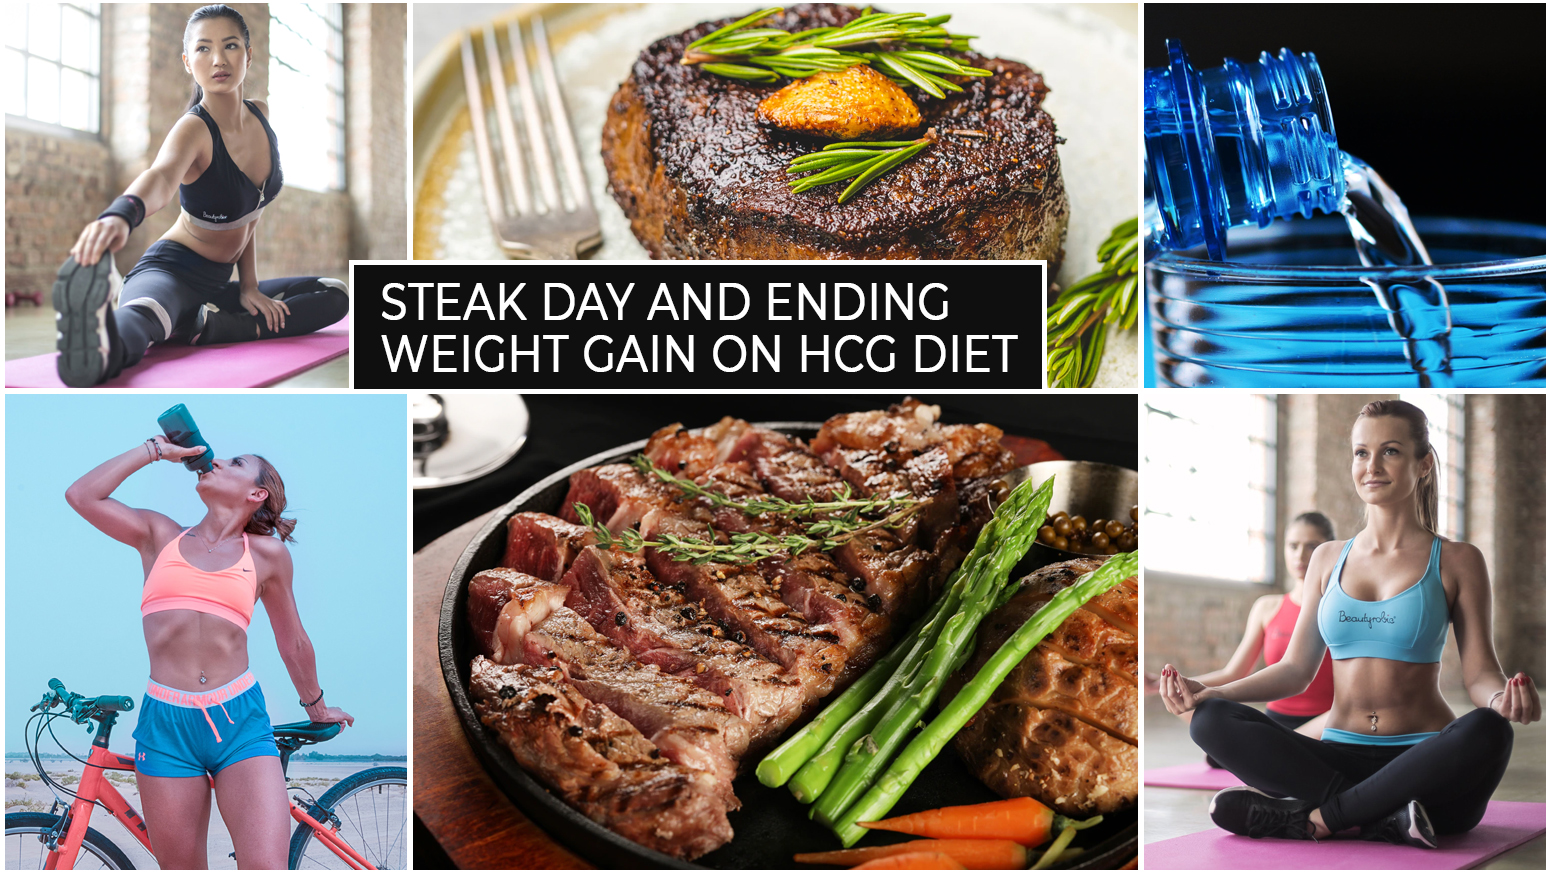 STEAK DAY AND ENDING WEIGHT GAIN ON HCG DIET